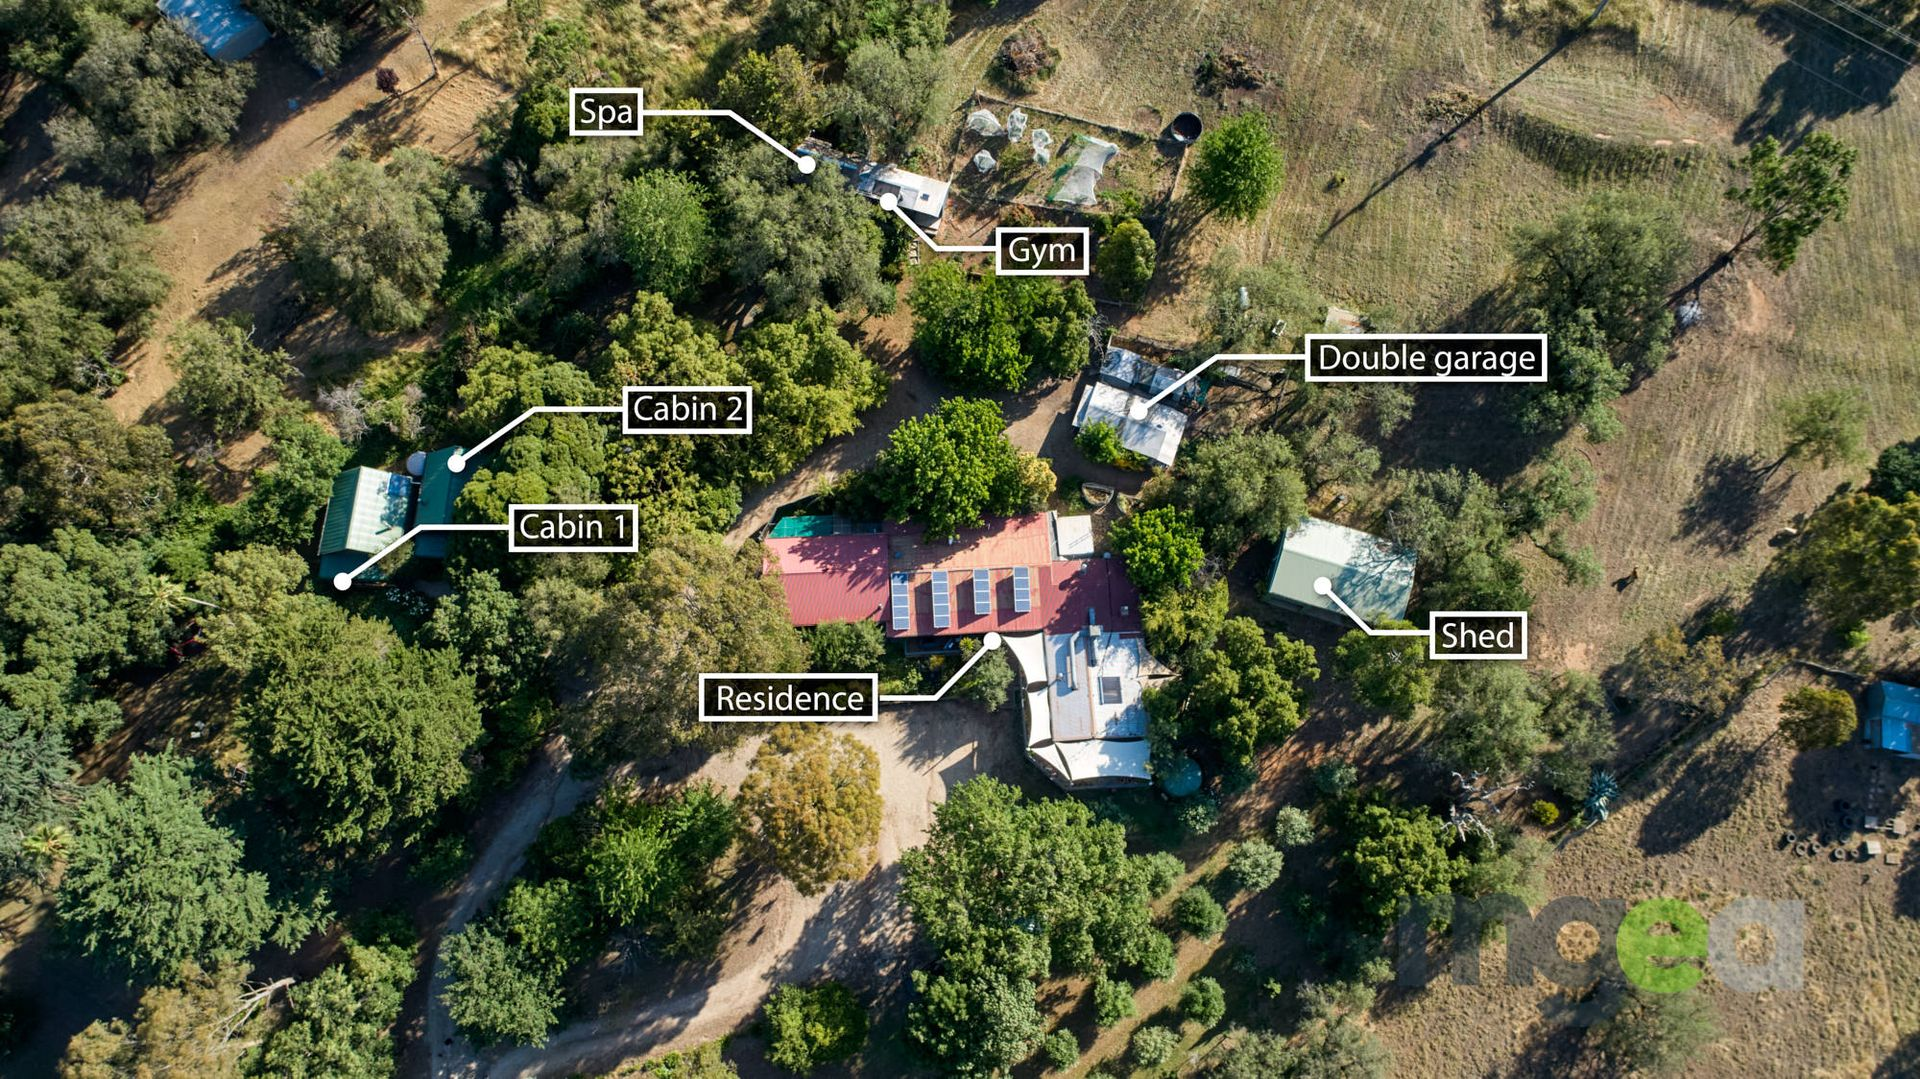 8447 Goulburn Valley Highway (Trawool), Seymour VIC 3660, Image 1